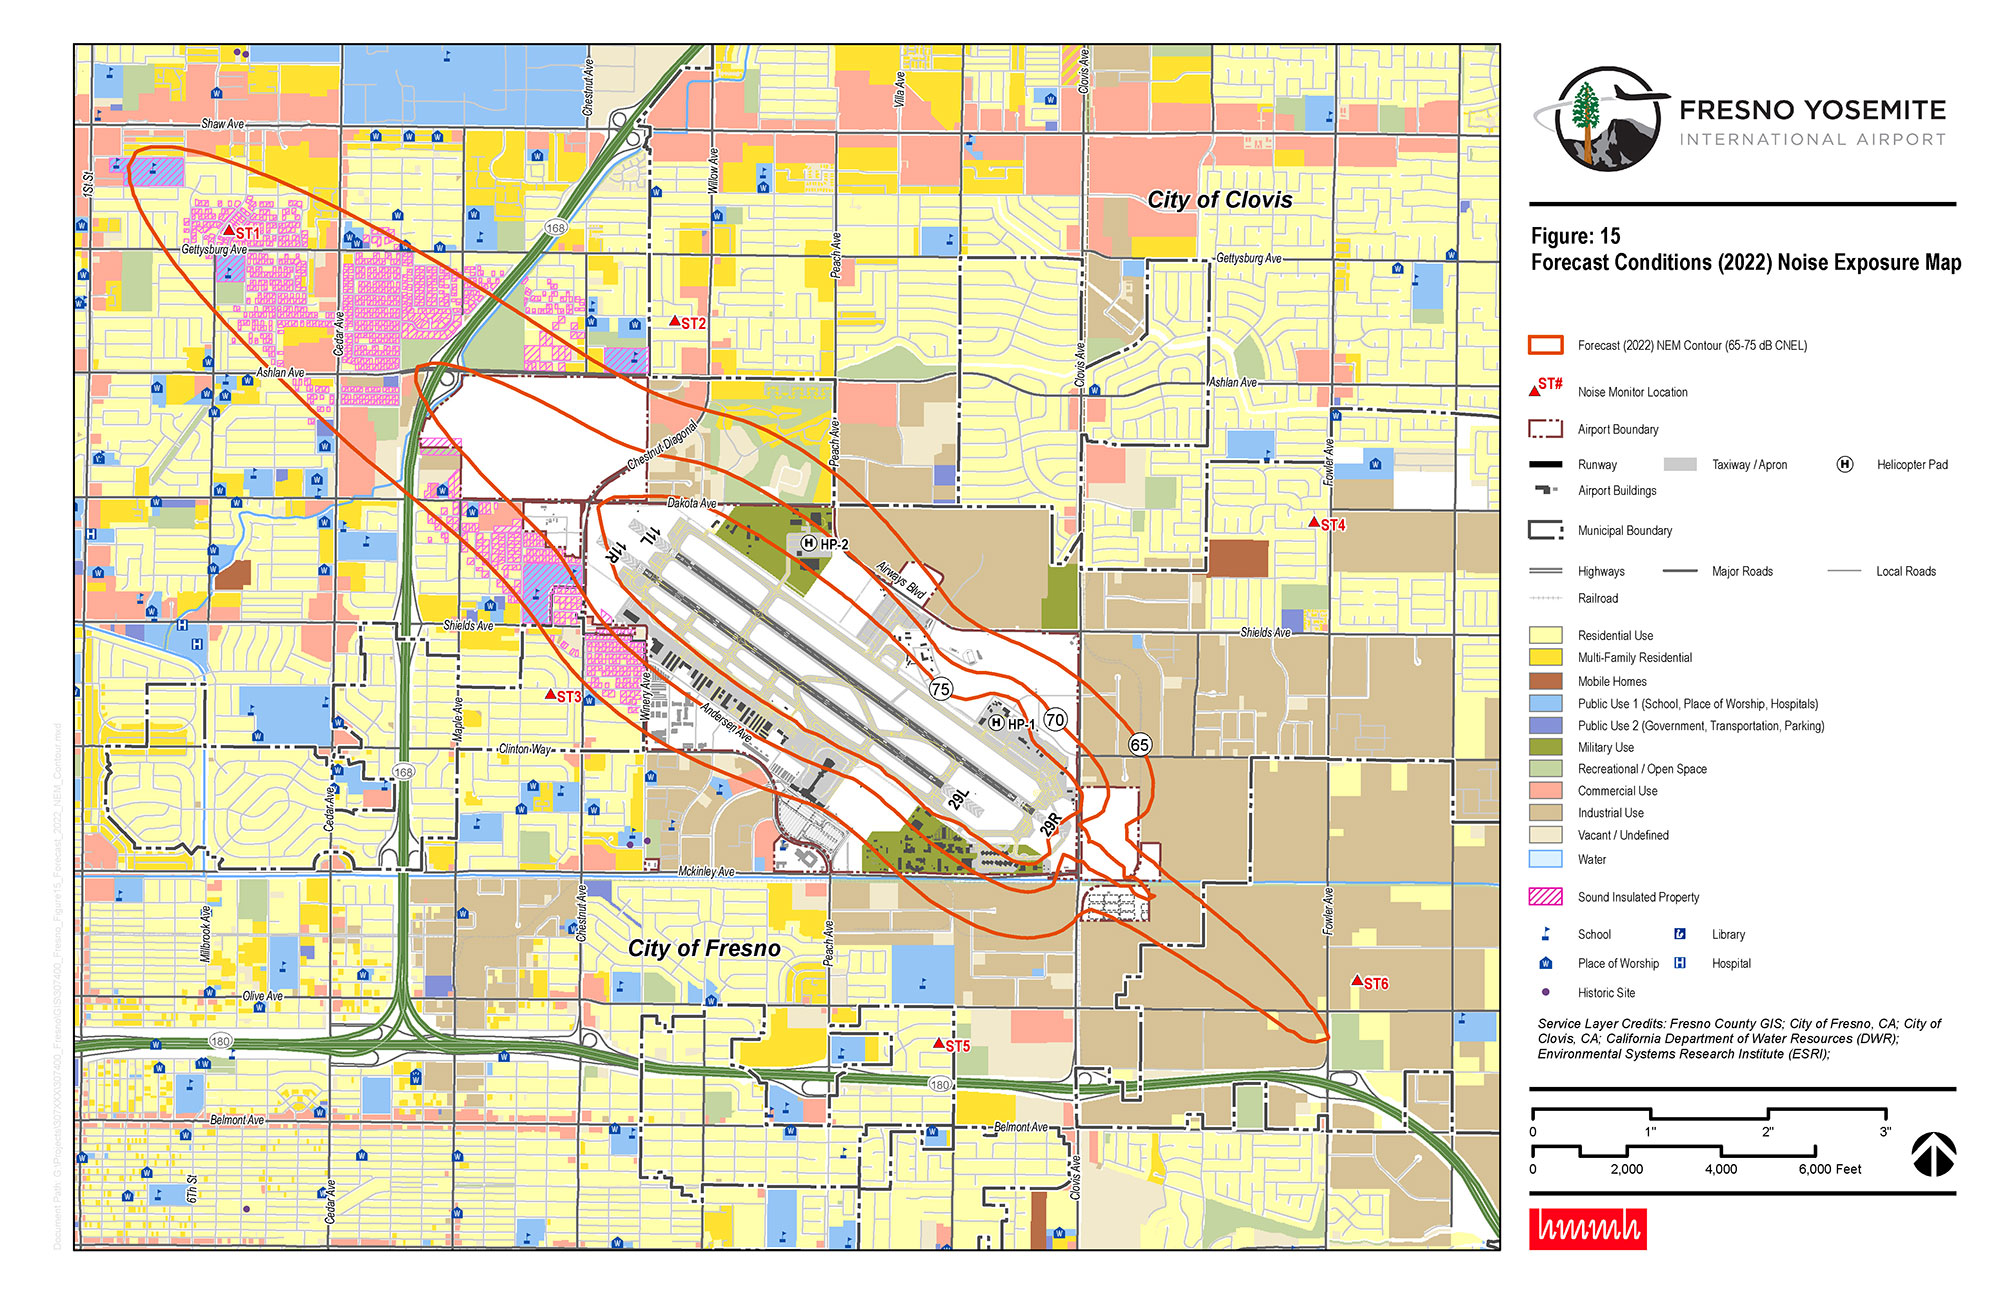 Noise Compatibility Planning (Part 150) Studies, Fresno Yosemite International Airport